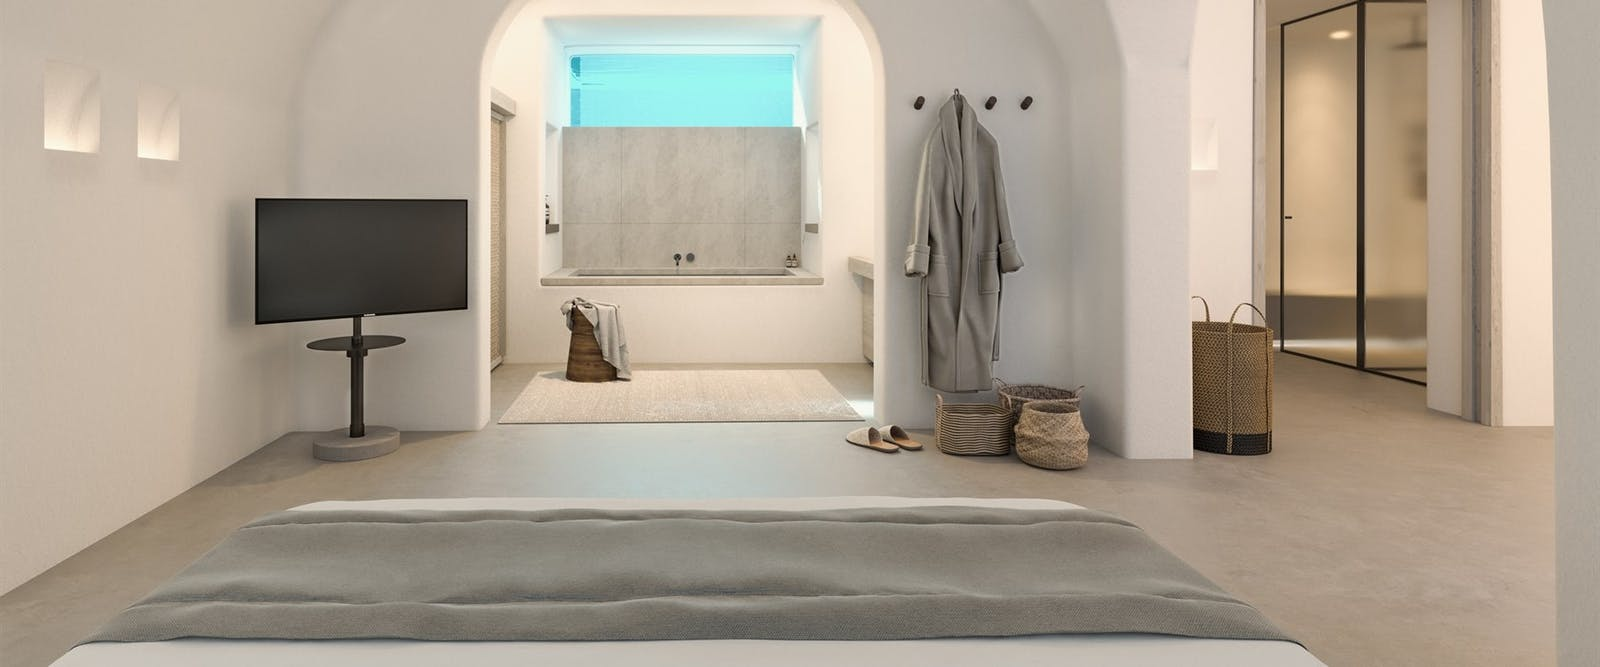 Accommodation at Canaves Oia Epitome, Santorini, Greece